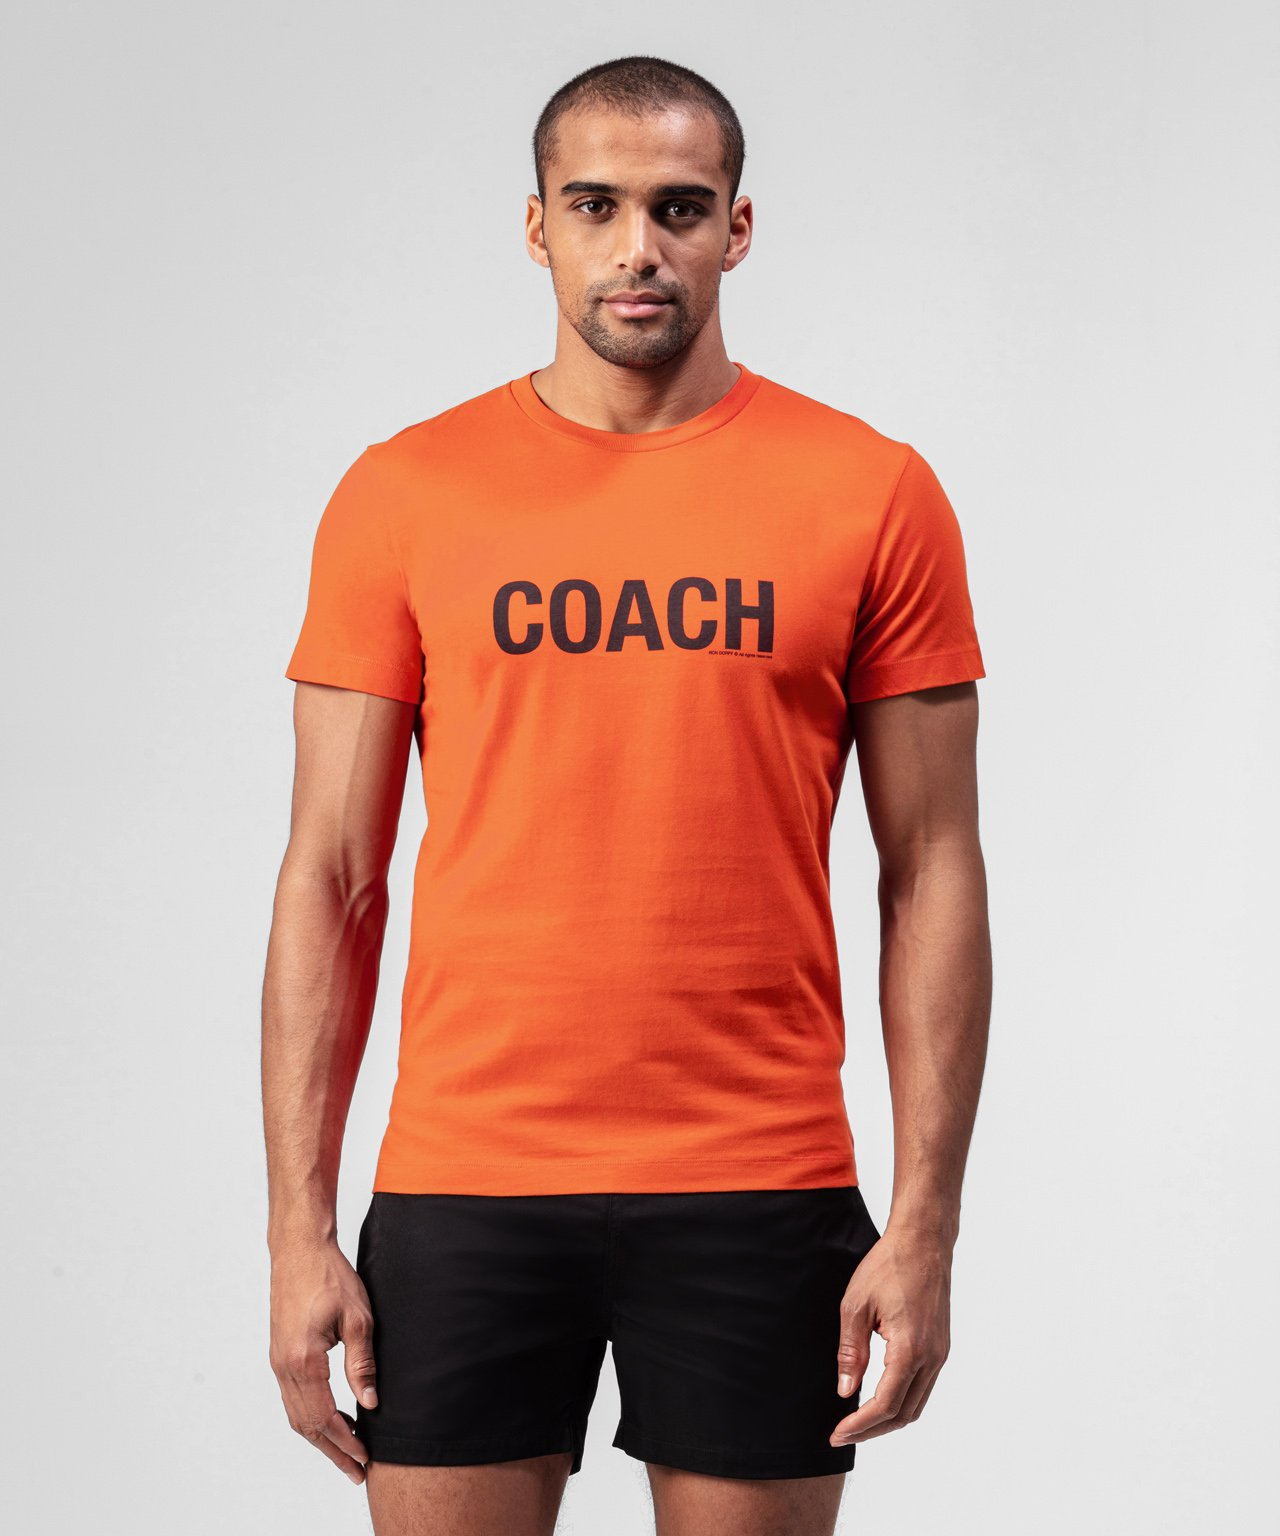 T-Shirt COACH - sunset orange